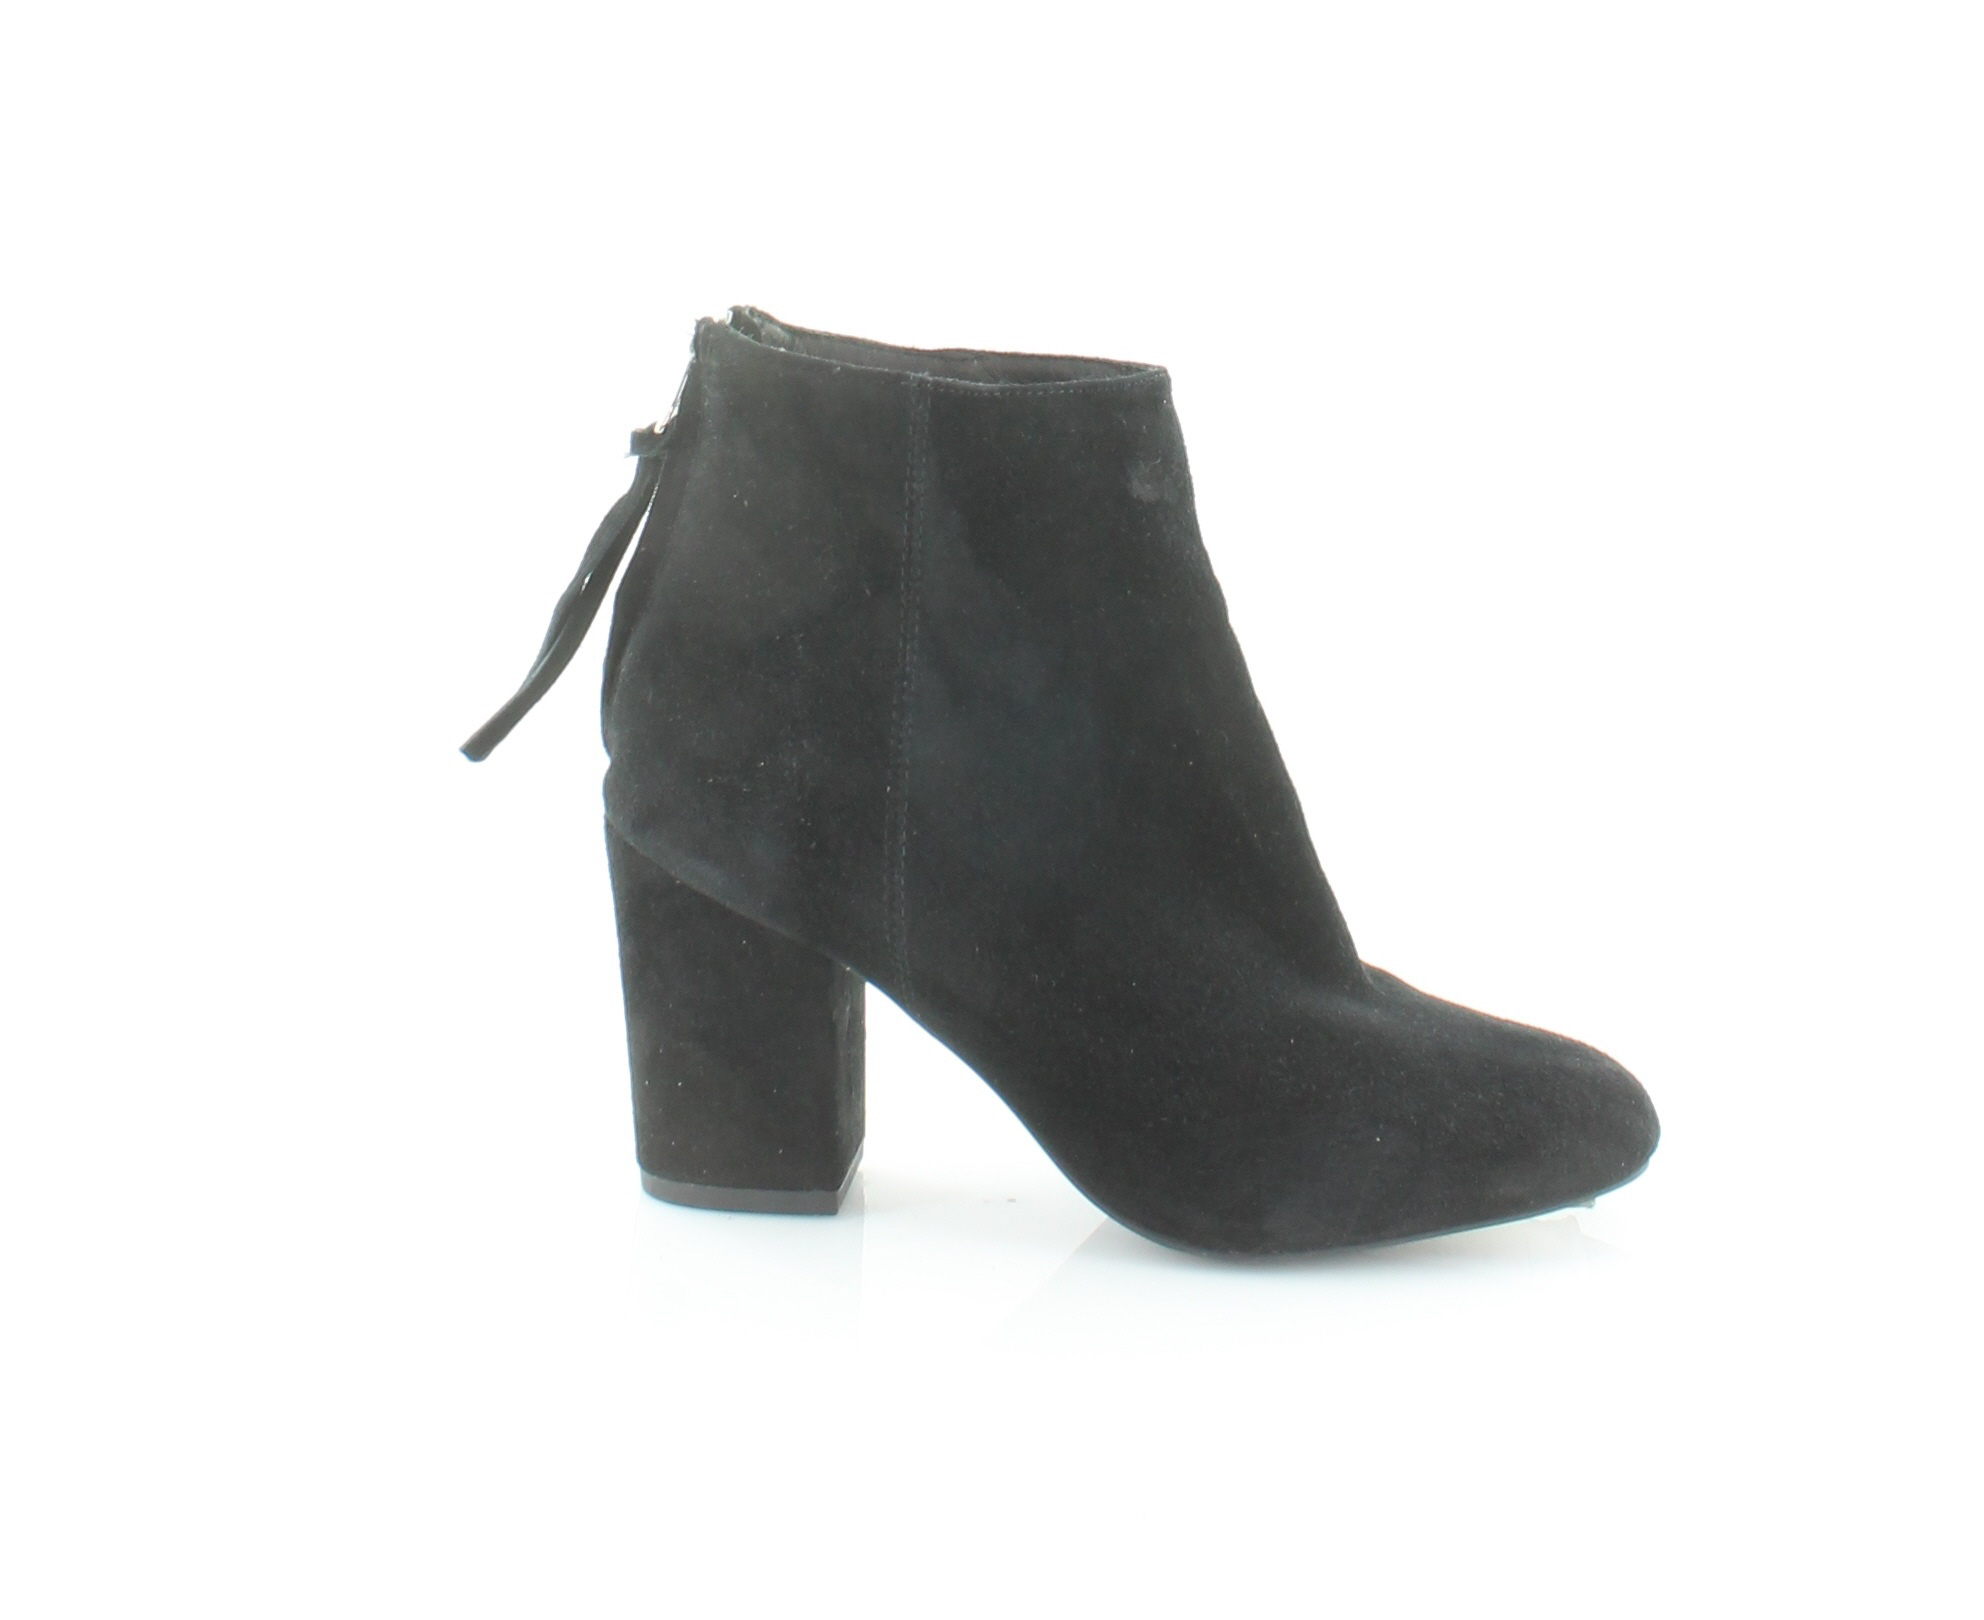 e62129ce304 Steve Madden Cynthia Black Womens Shoes Size 5.5 M Boots MSRP  129 ...